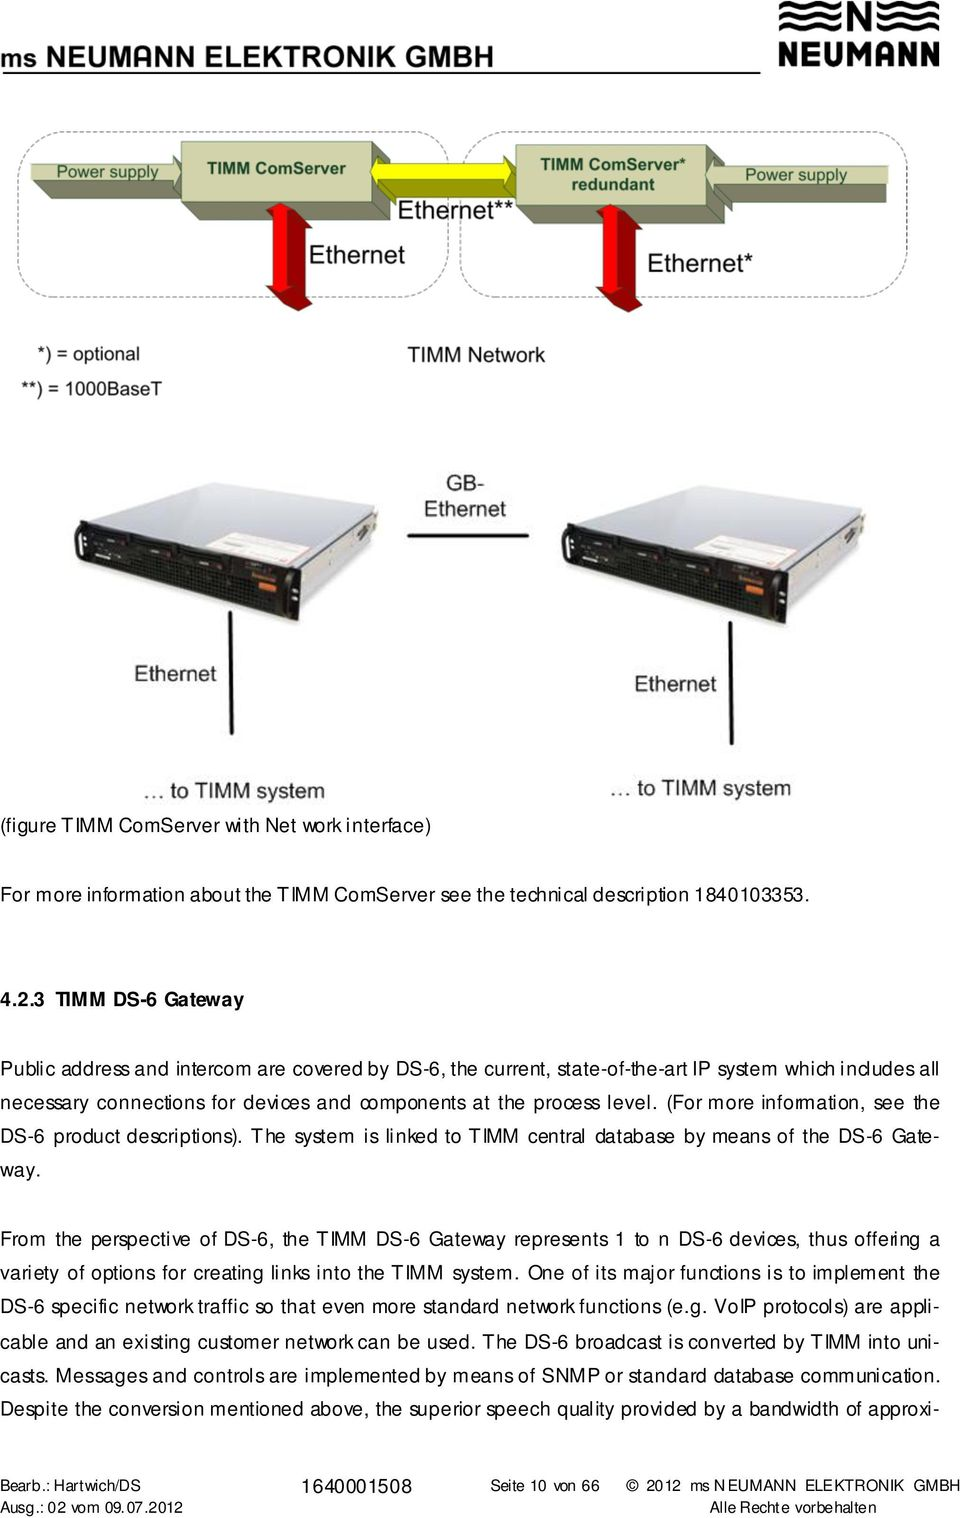 (For more information, see the DS-6 product descriptions). The system is linked to TIMM central database by means of the DS-6 Gateway.